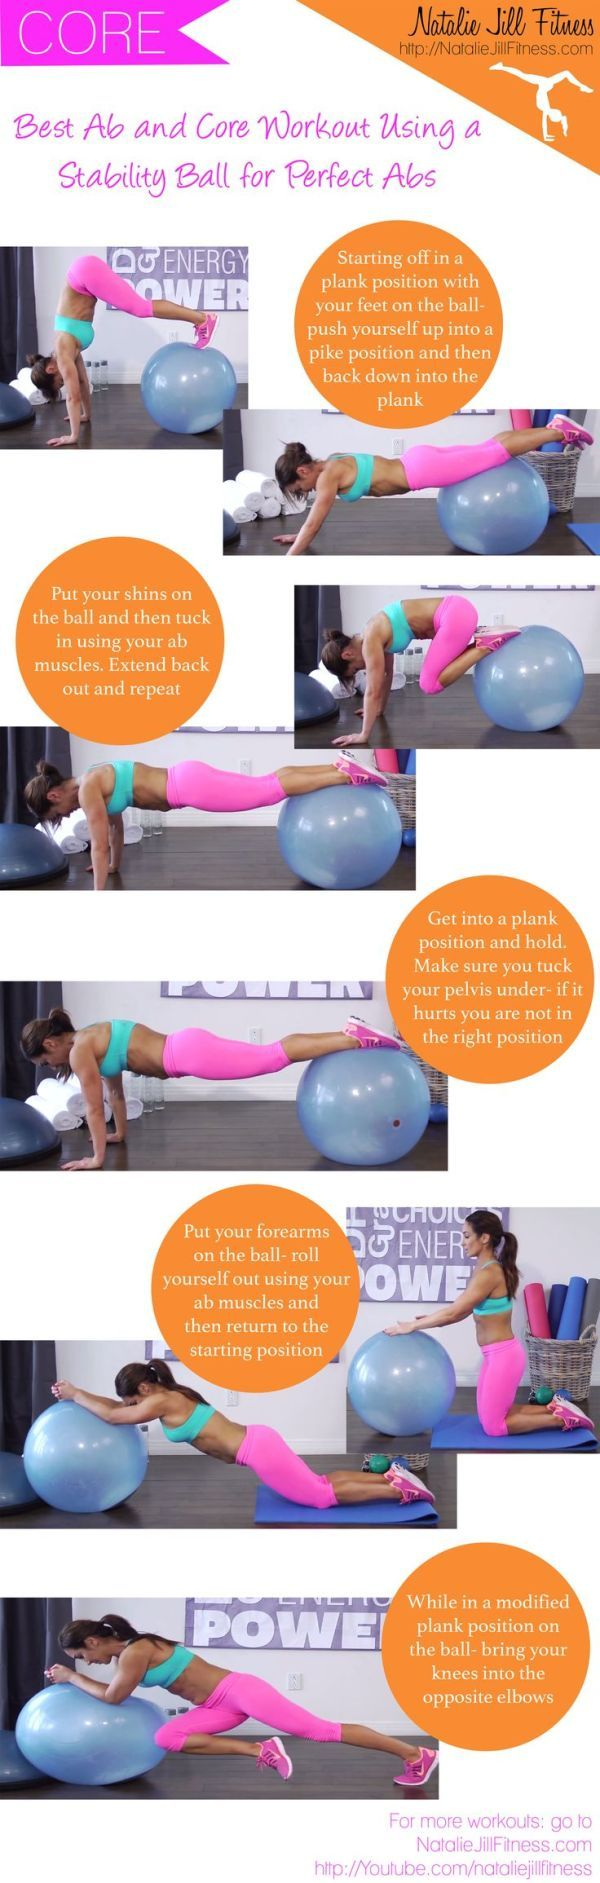 3 Stability Ball Workouts (featuring Natalie Jill)